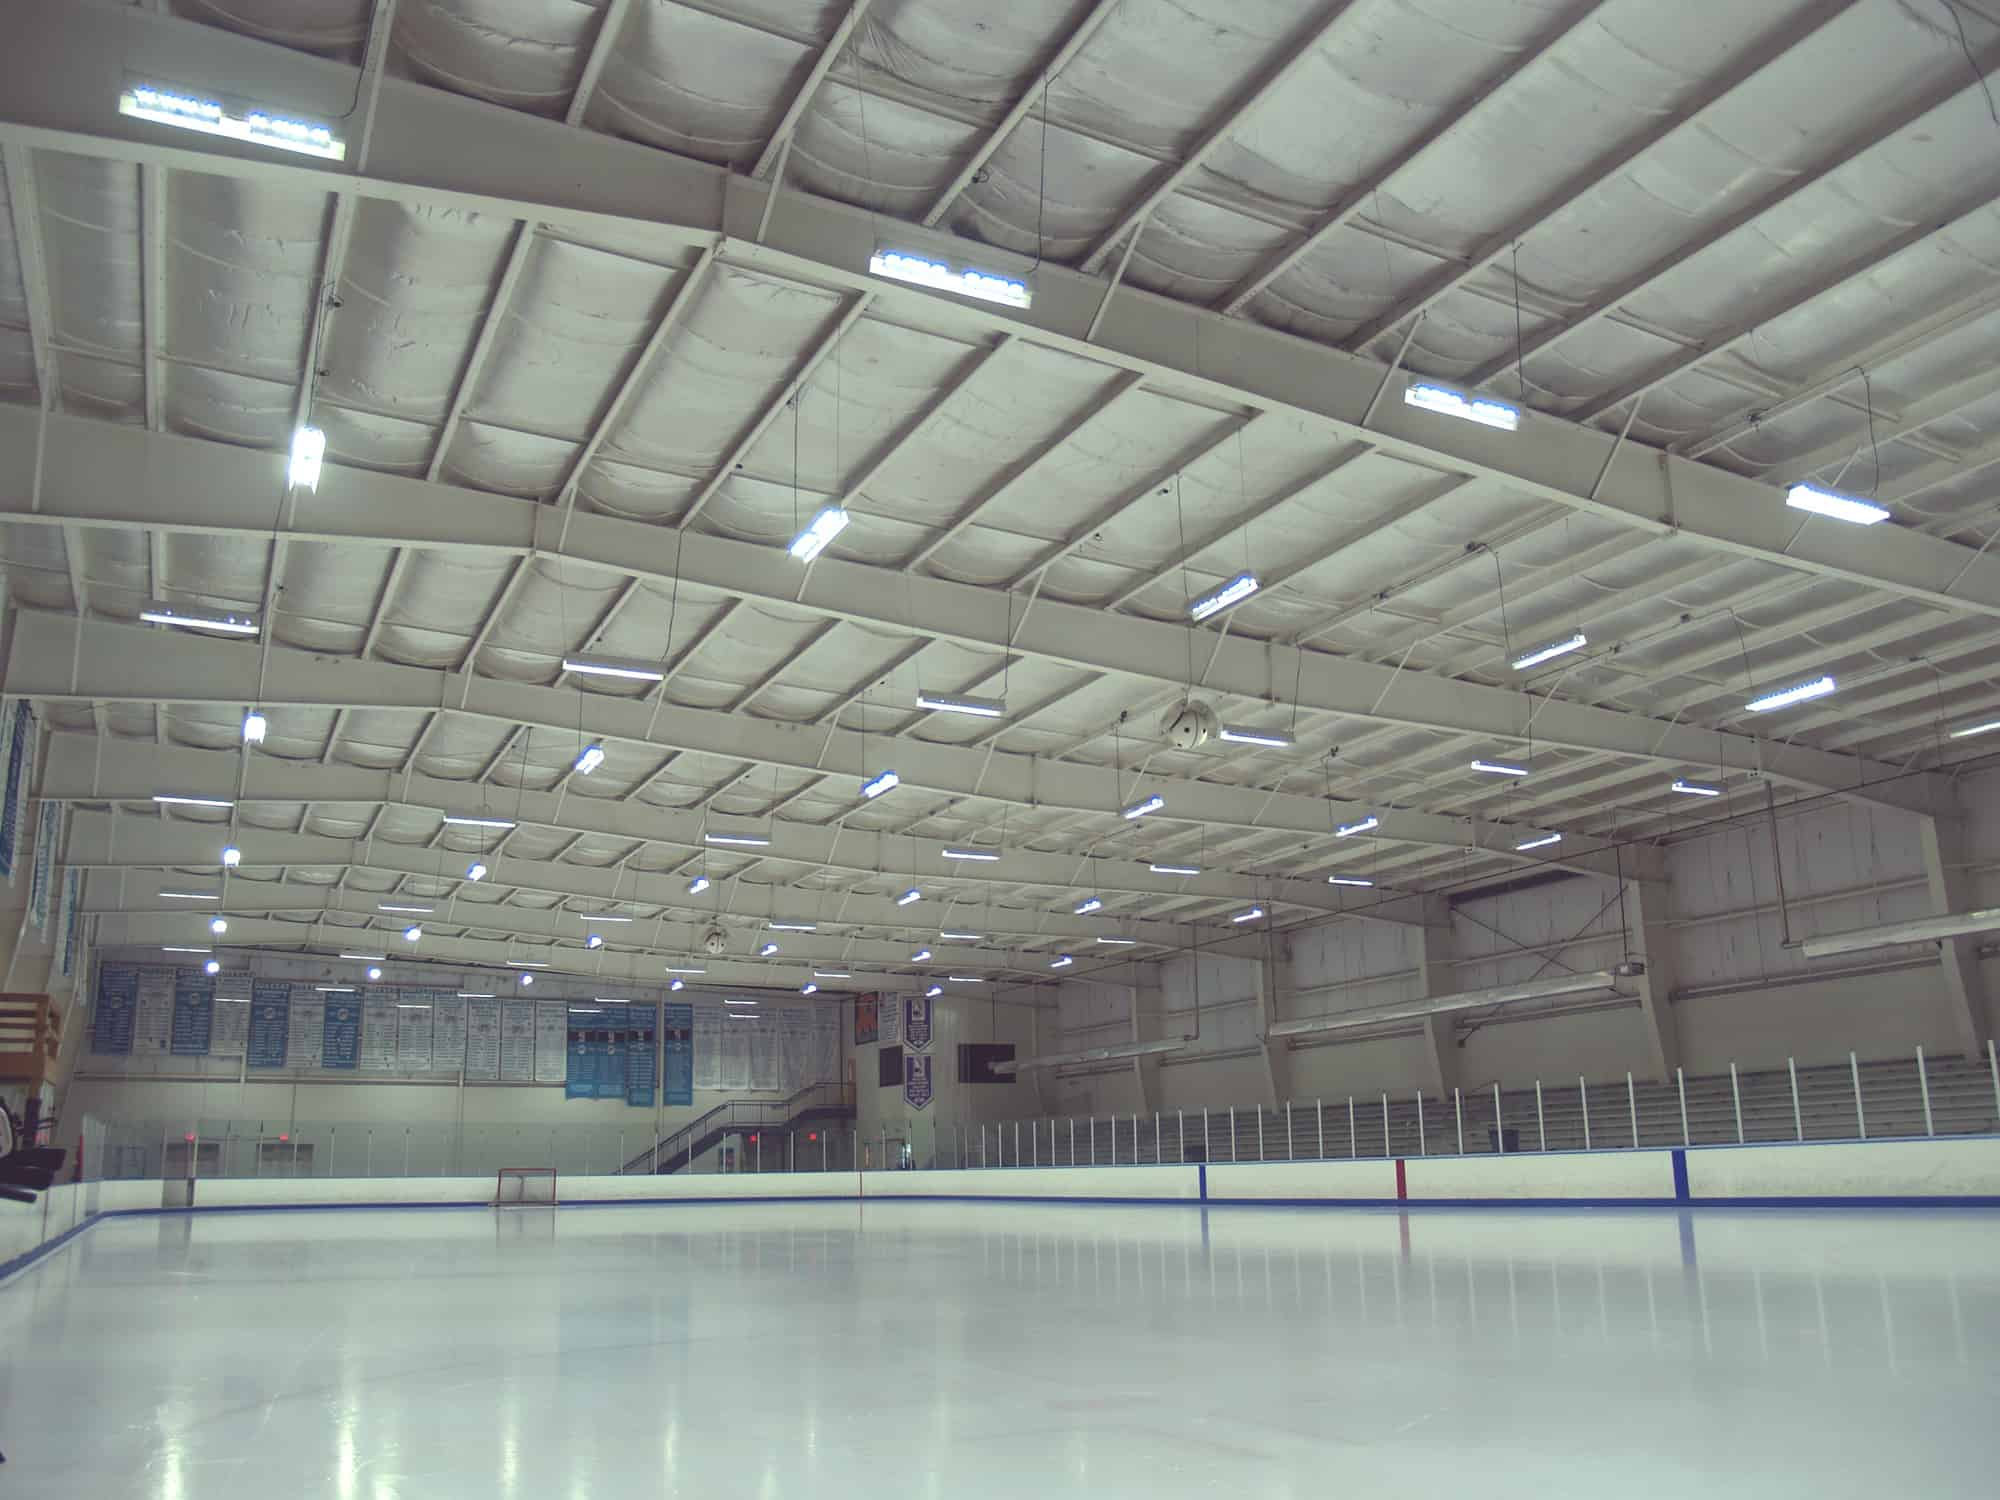 Ice Skating Rink - Lighting Case study